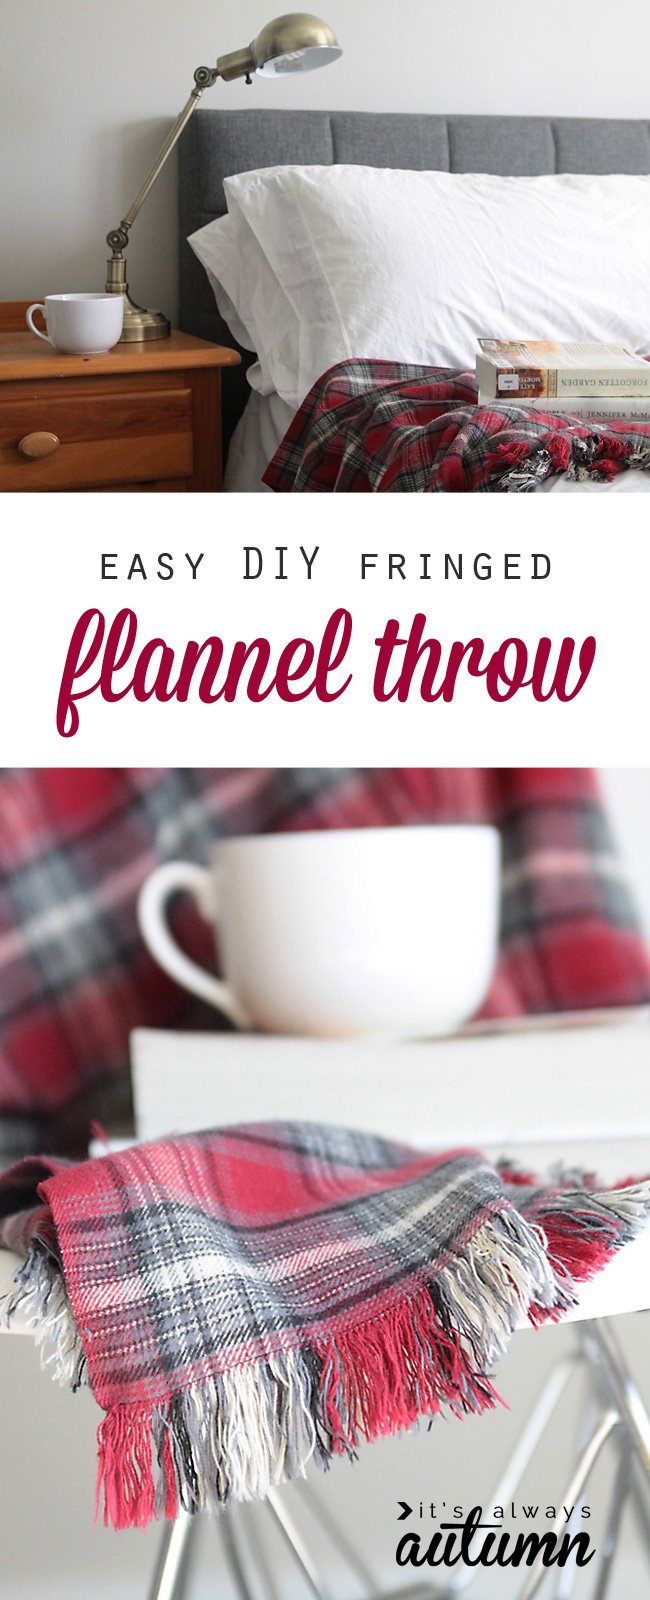 DIY fringed flannel throw on a bed, with cup of cocoa